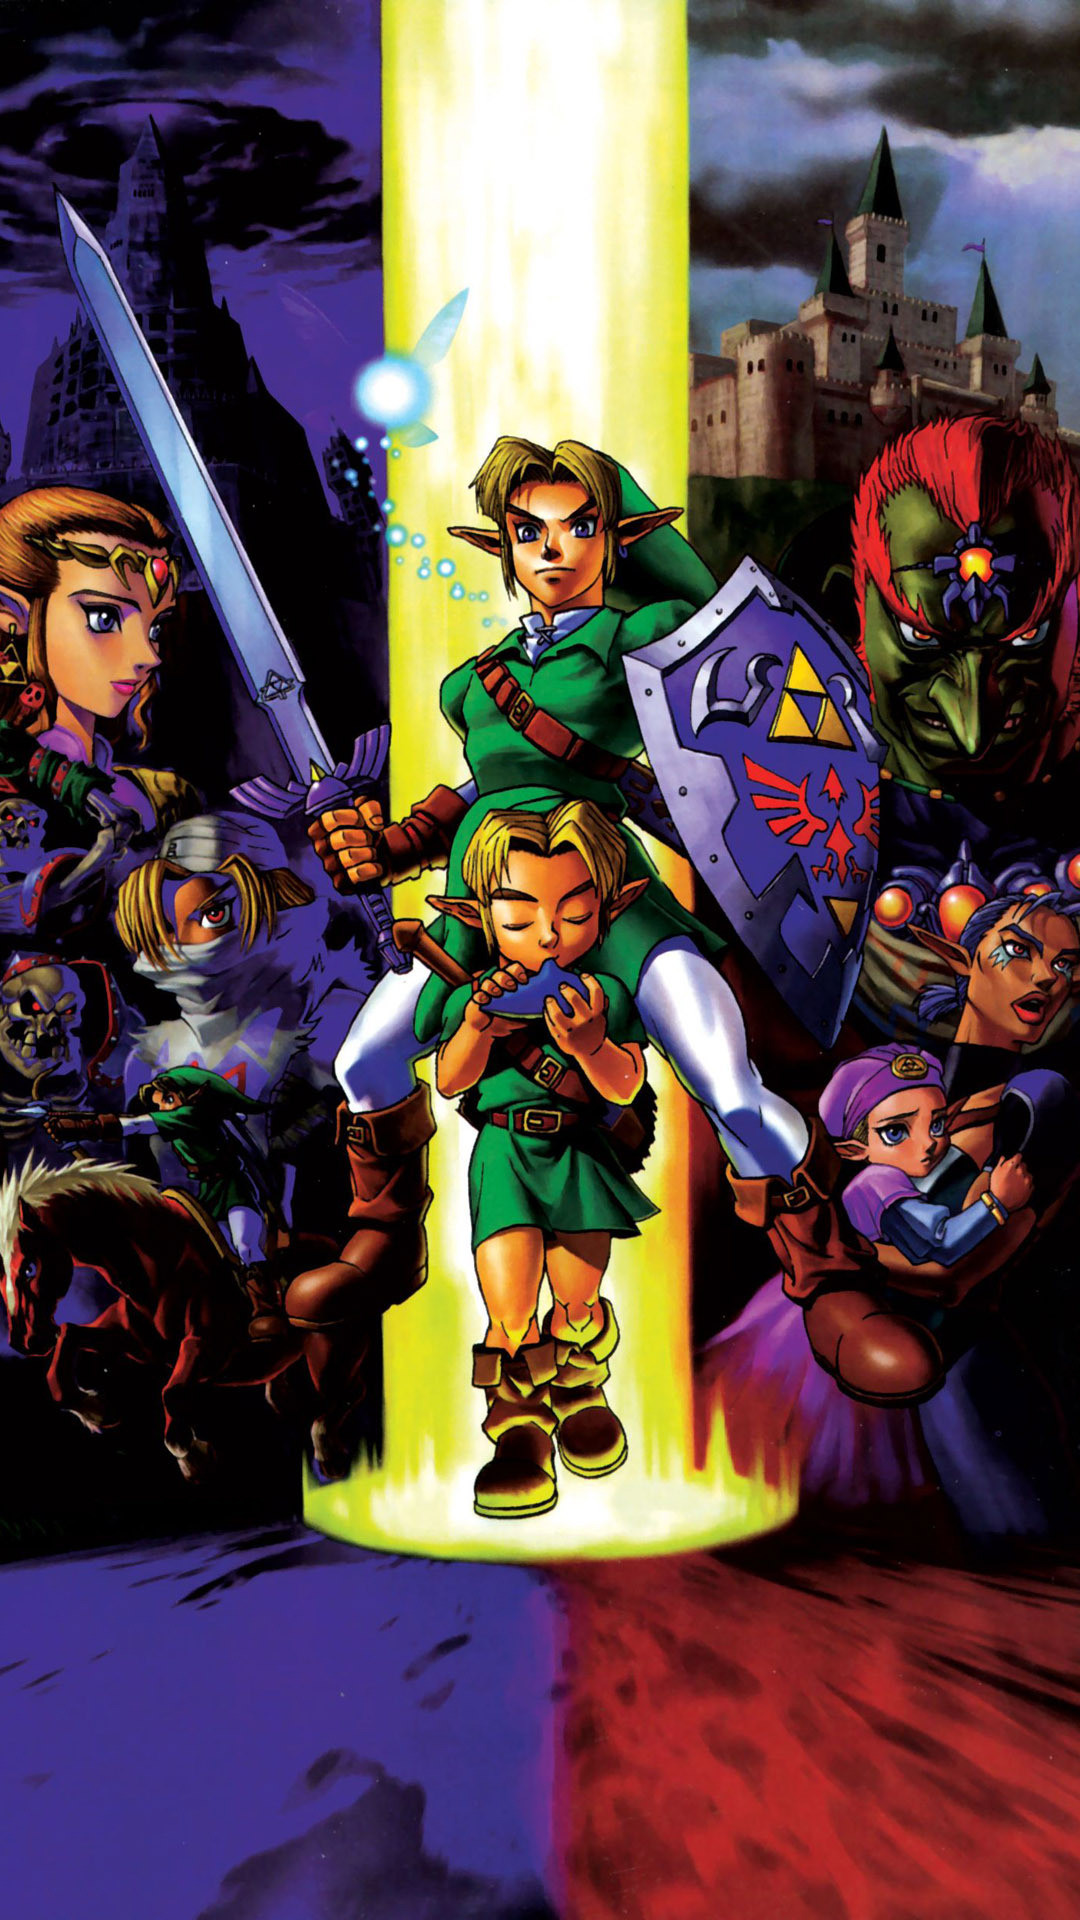 Ocarina Of Time Wallpaper Hd 74 Images